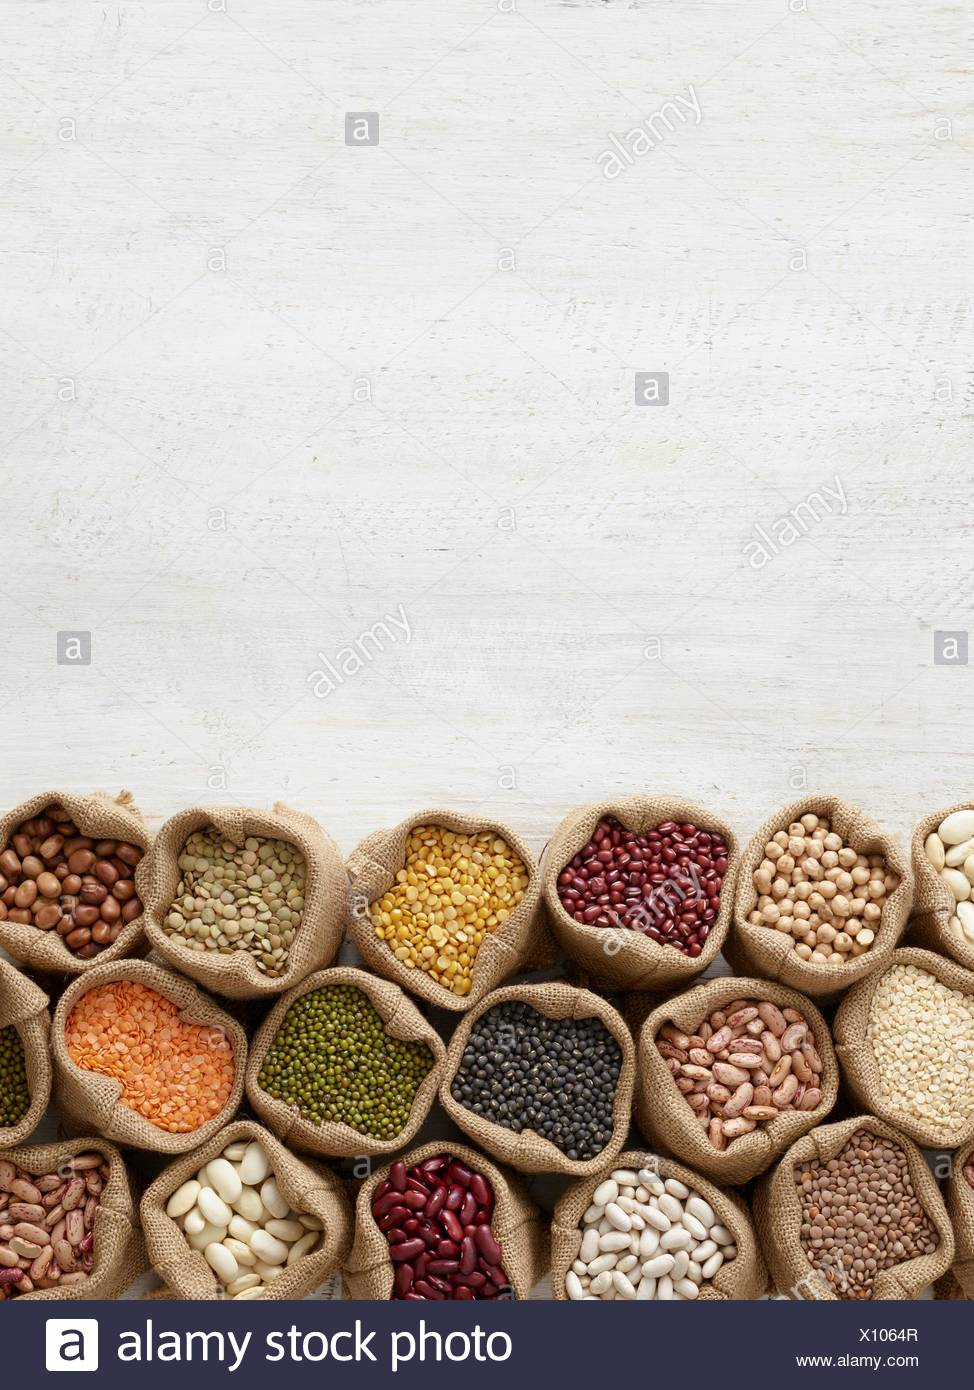 Pulses in hessian sacks, overhead view. - Stock Image